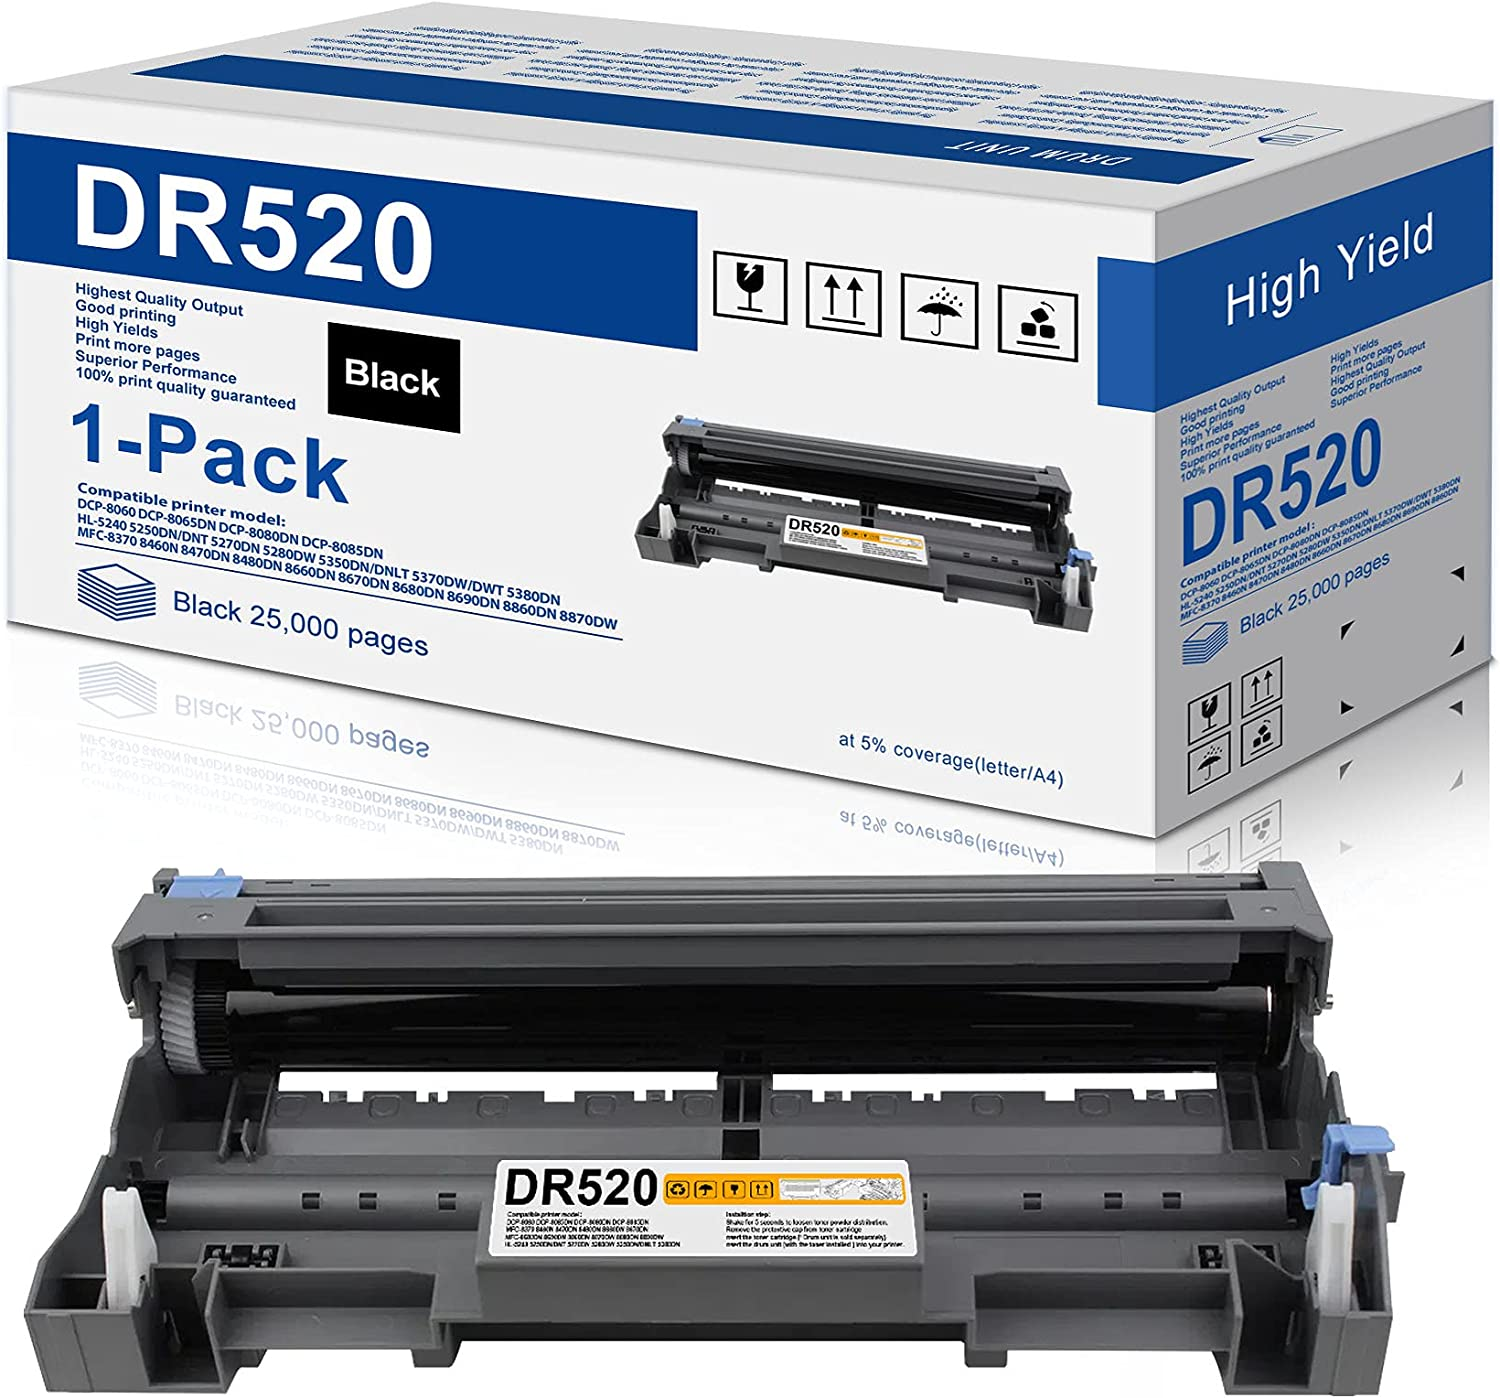 1-Pack Dallas Mall Albuquerque Mall Black Compatible Drum Unit DR520 Brother Replacement for